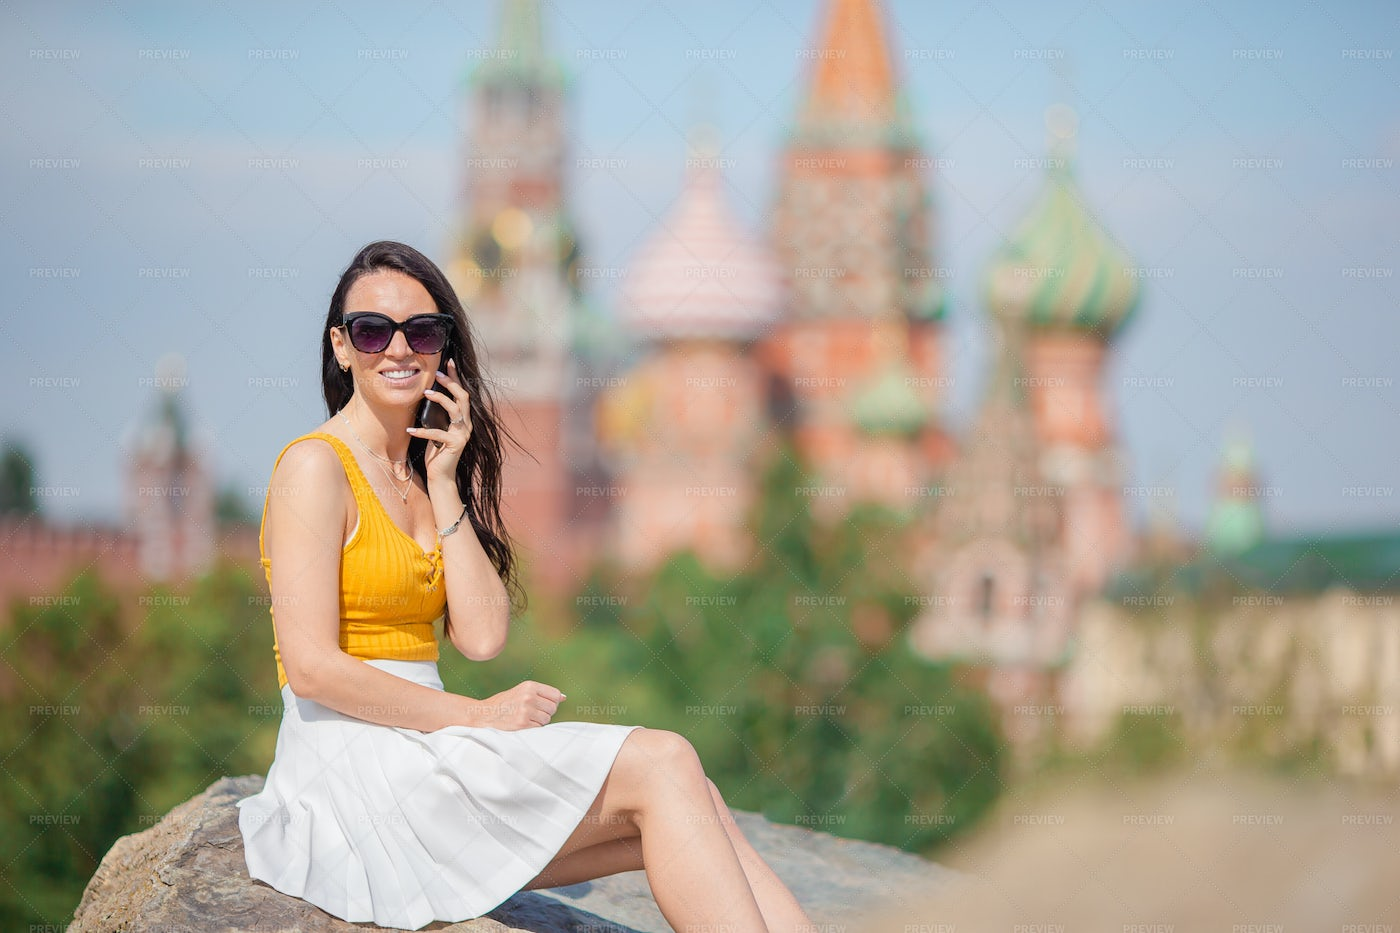 Tourist On The Phone In A Big City: Stock Photos